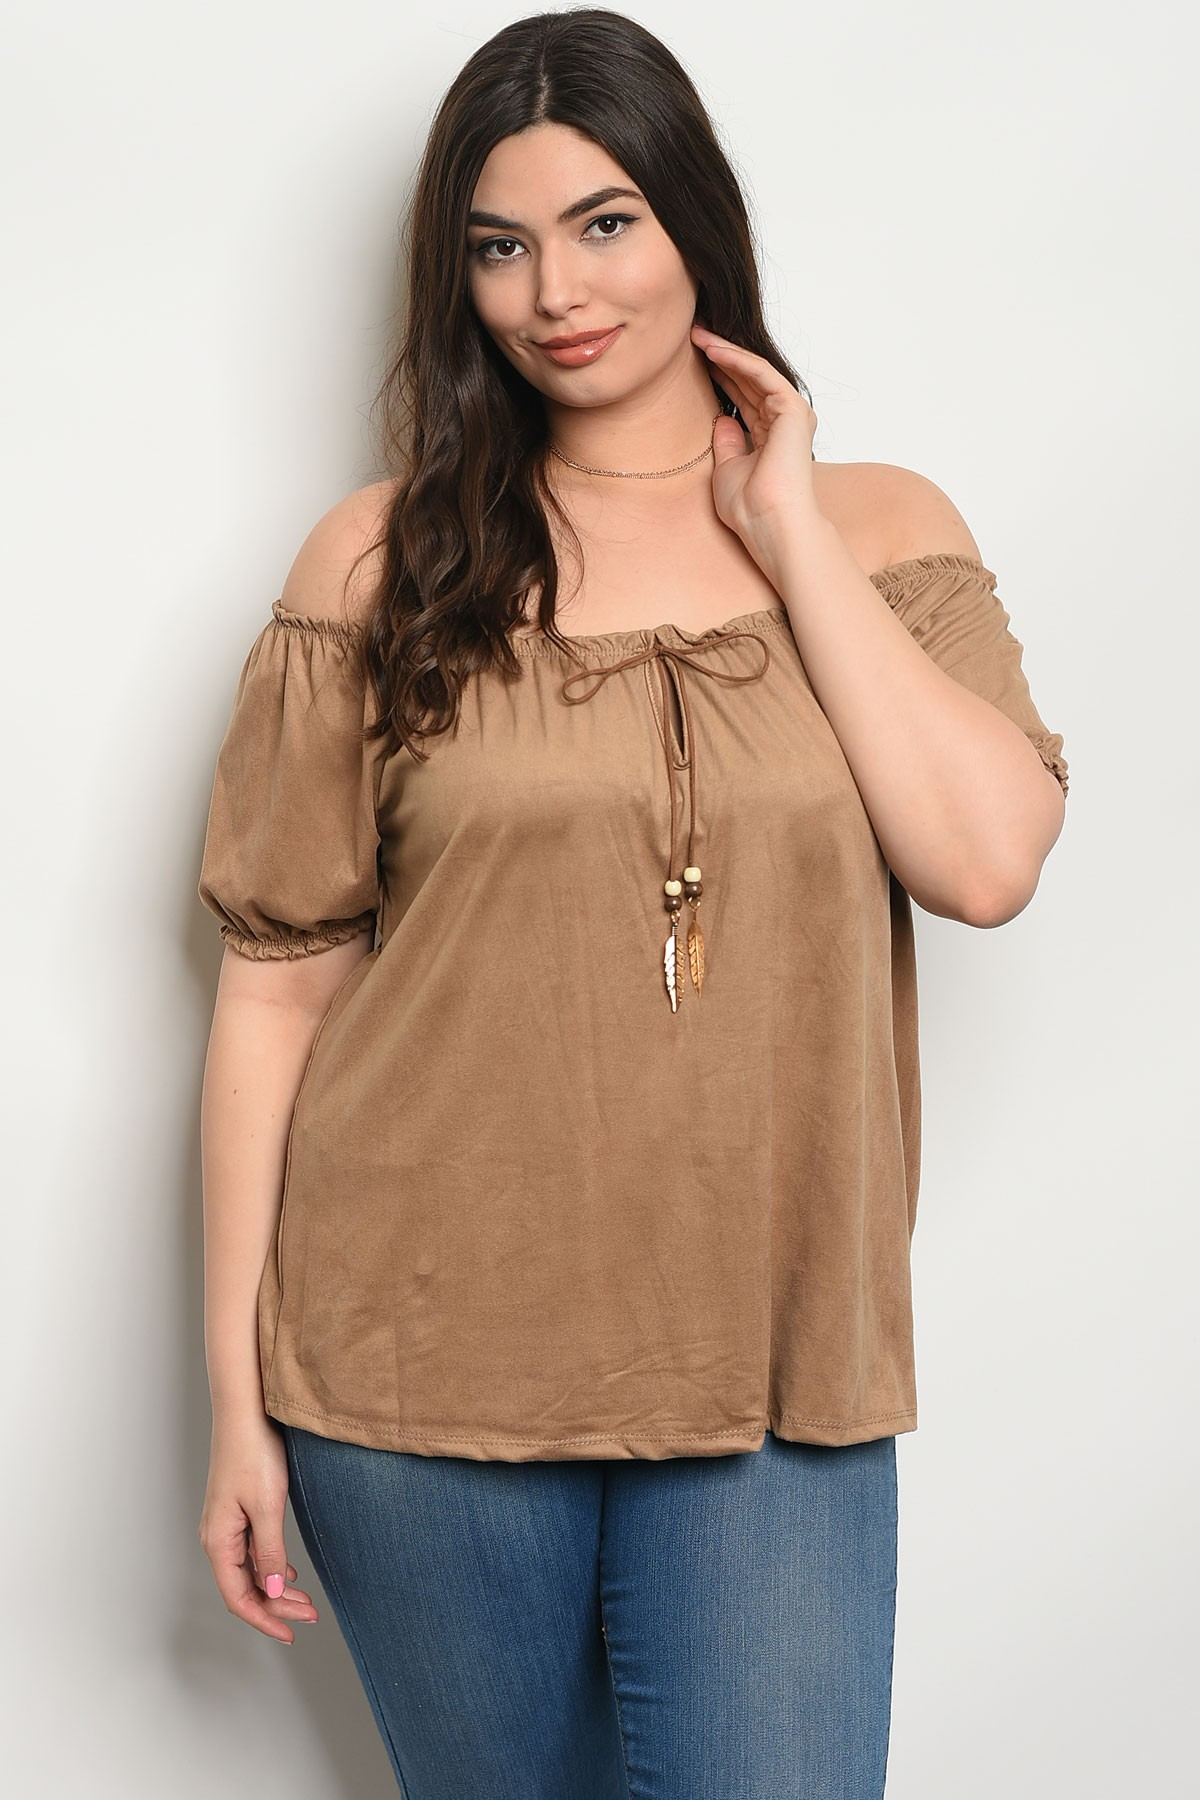 5522f623d8f286 ... TAUPE PLUS SIZE TOP 2-2-2 · Larger Photo ...